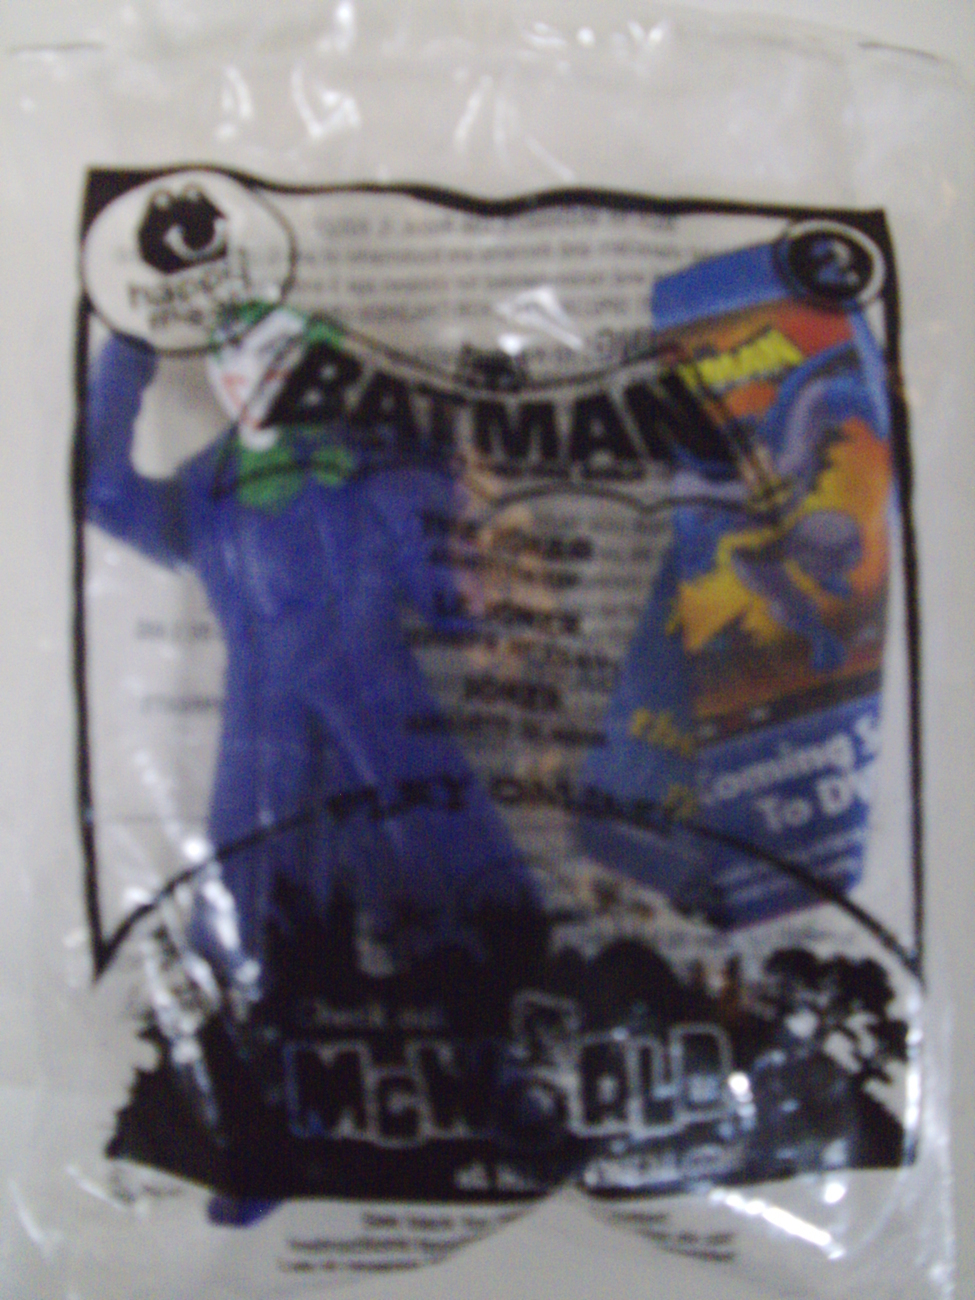 Primary image for DC Comics Batman The Brave and the Bold Joker Squierter McDonald's Toy - New